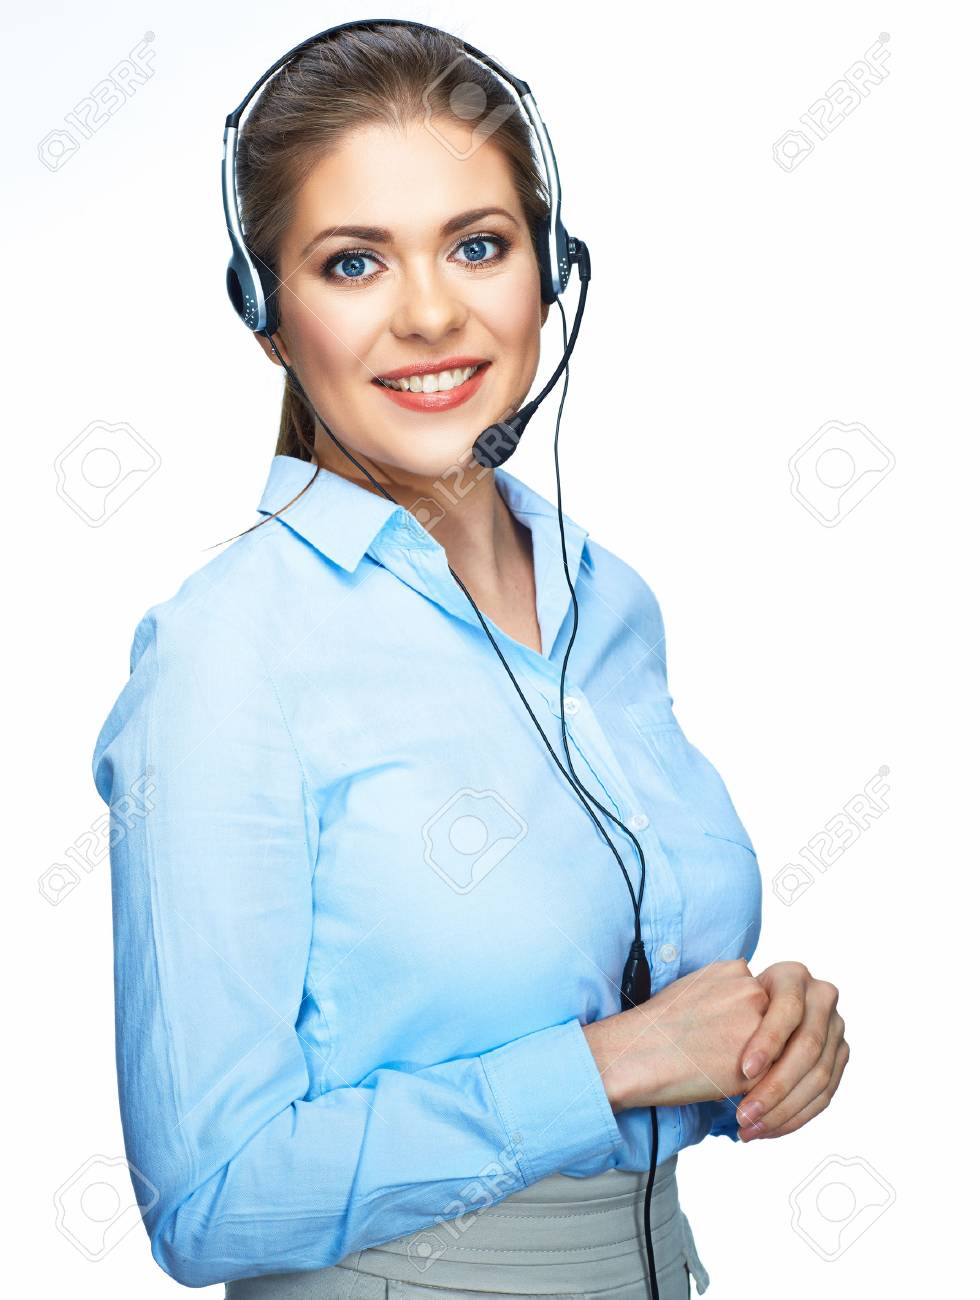 Toothy smiling office worker operator. Business woman isolated white background portrait. - 85398219